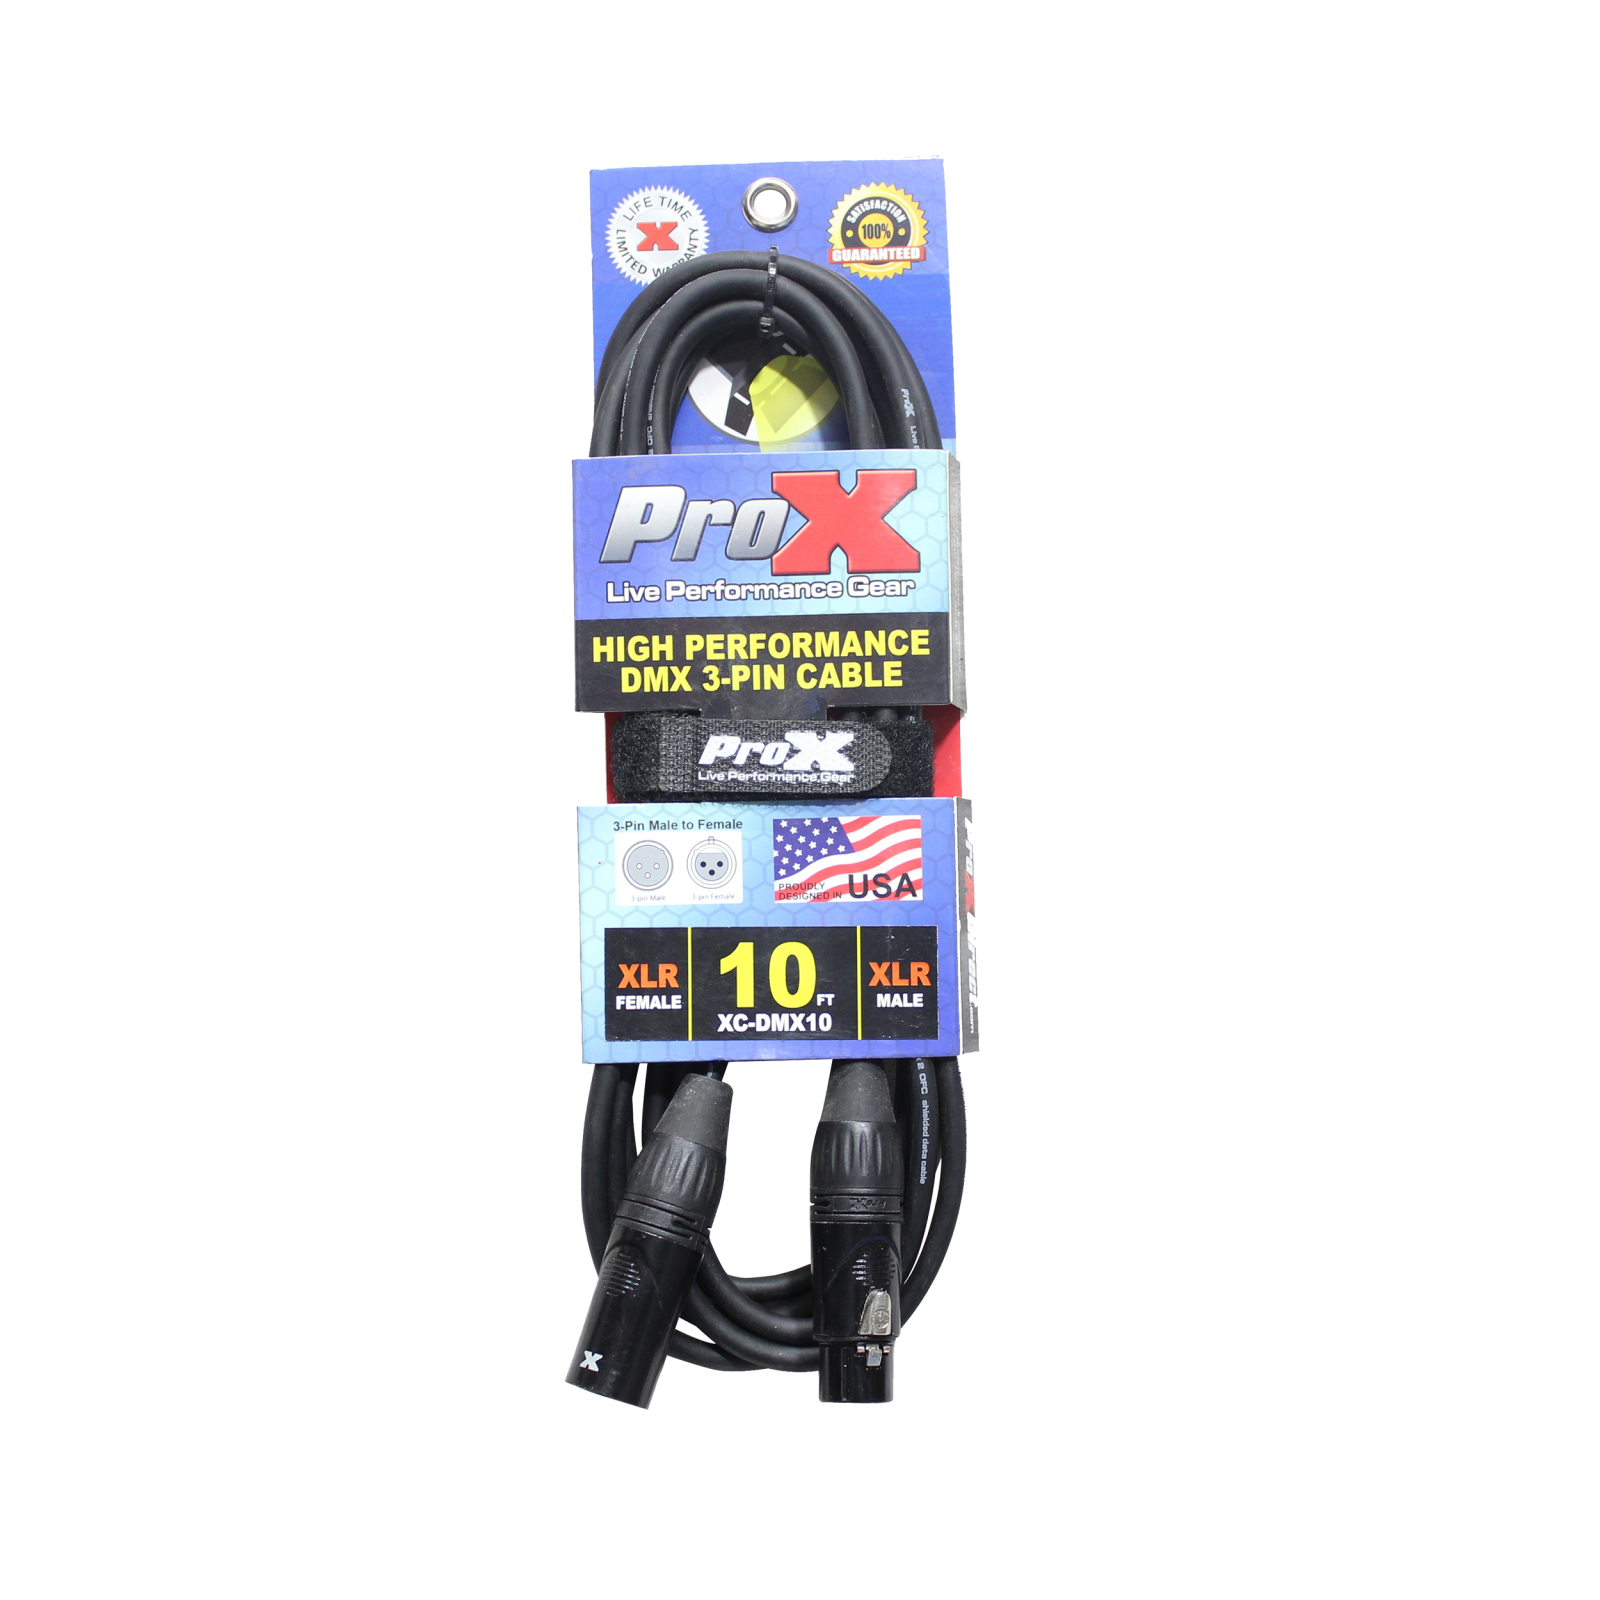 ProX High Performance 3PIN DMX Cable